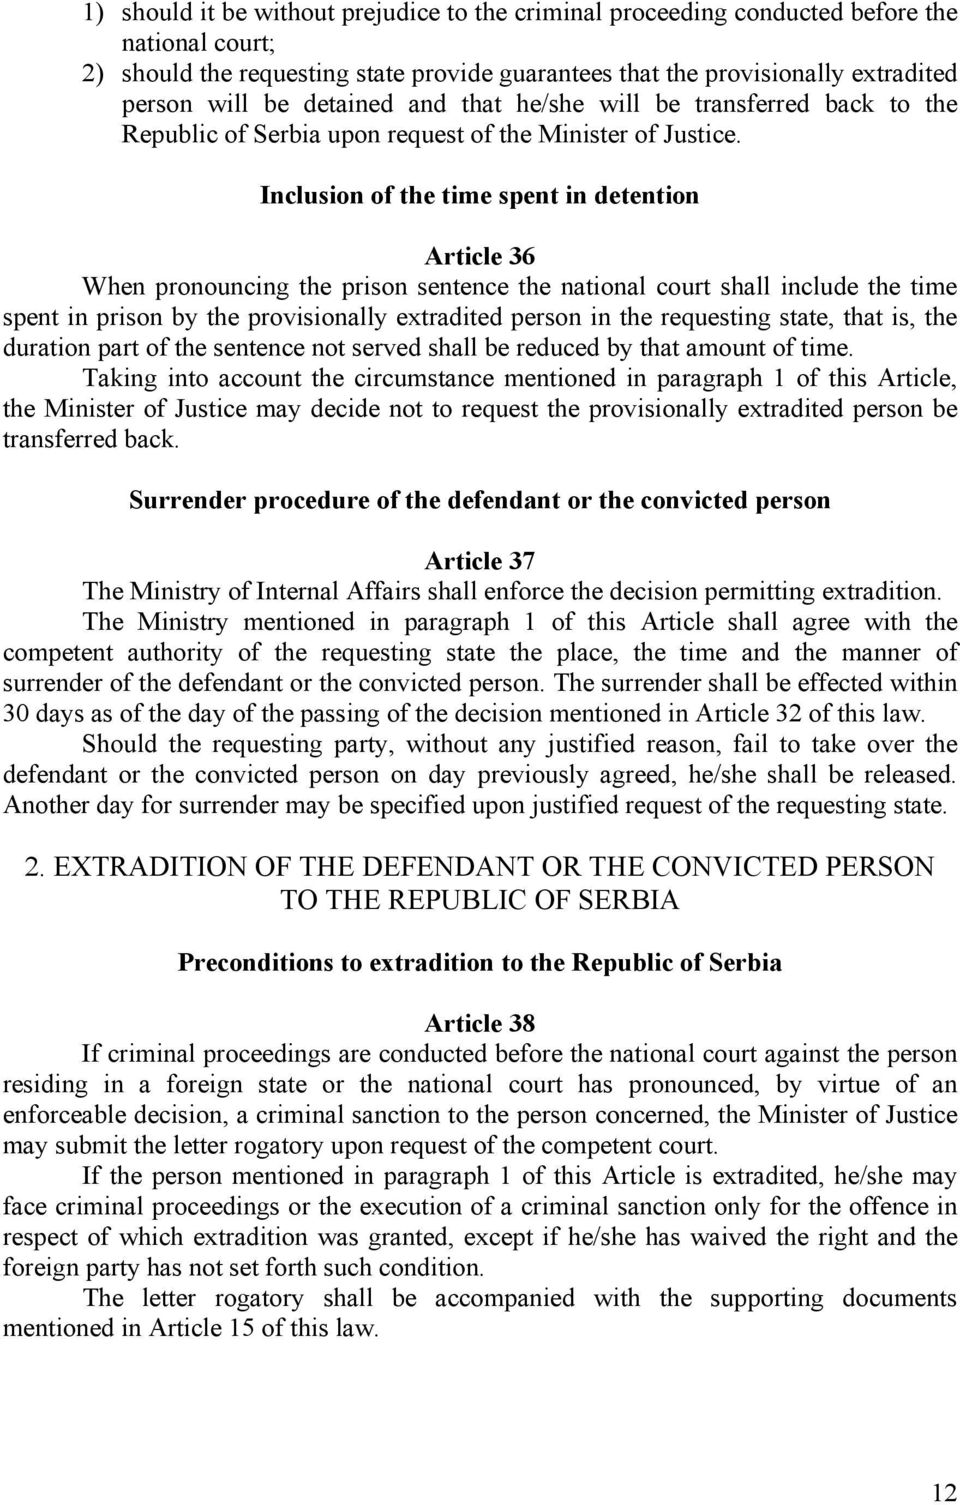 Inclusion of the time spent in detention Article 36 When pronouncing the prison sentence the national court shall include the time spent in prison by the provisionally extradited person in the